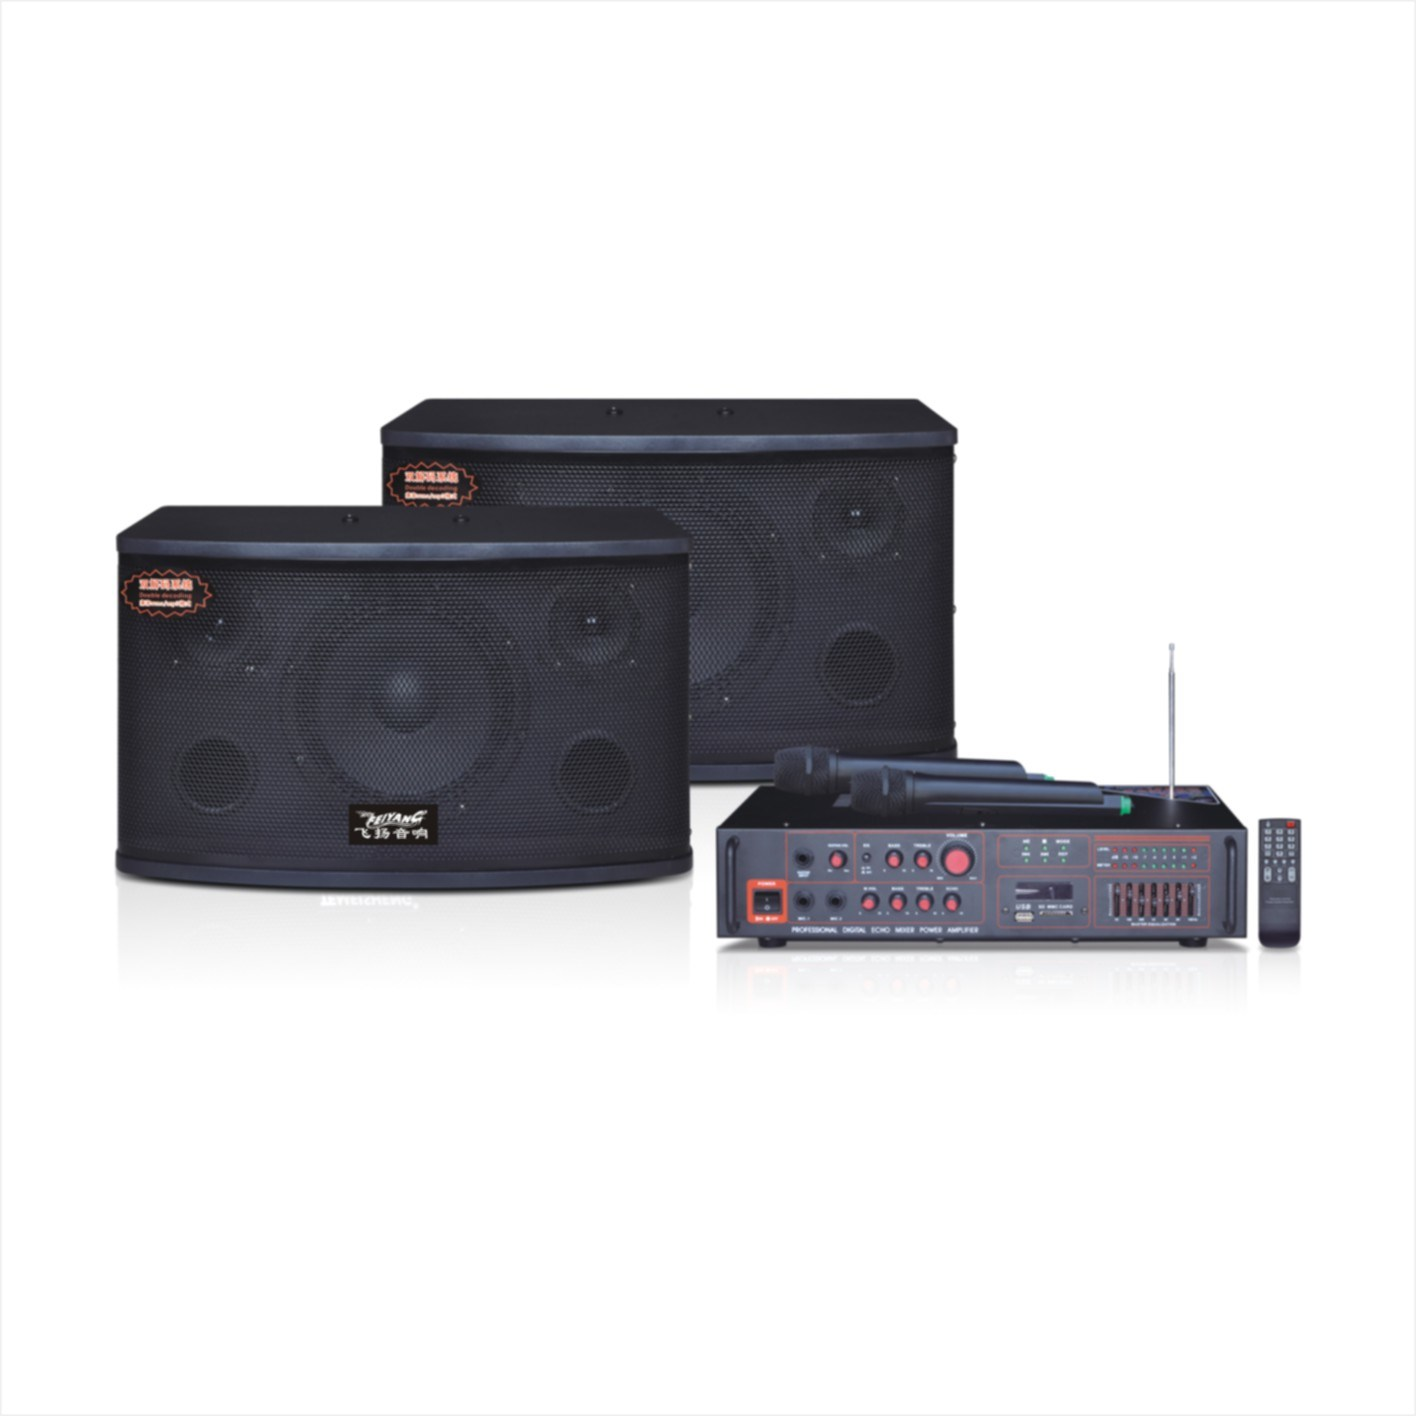 2.1 Professional Home Theater Speaker System